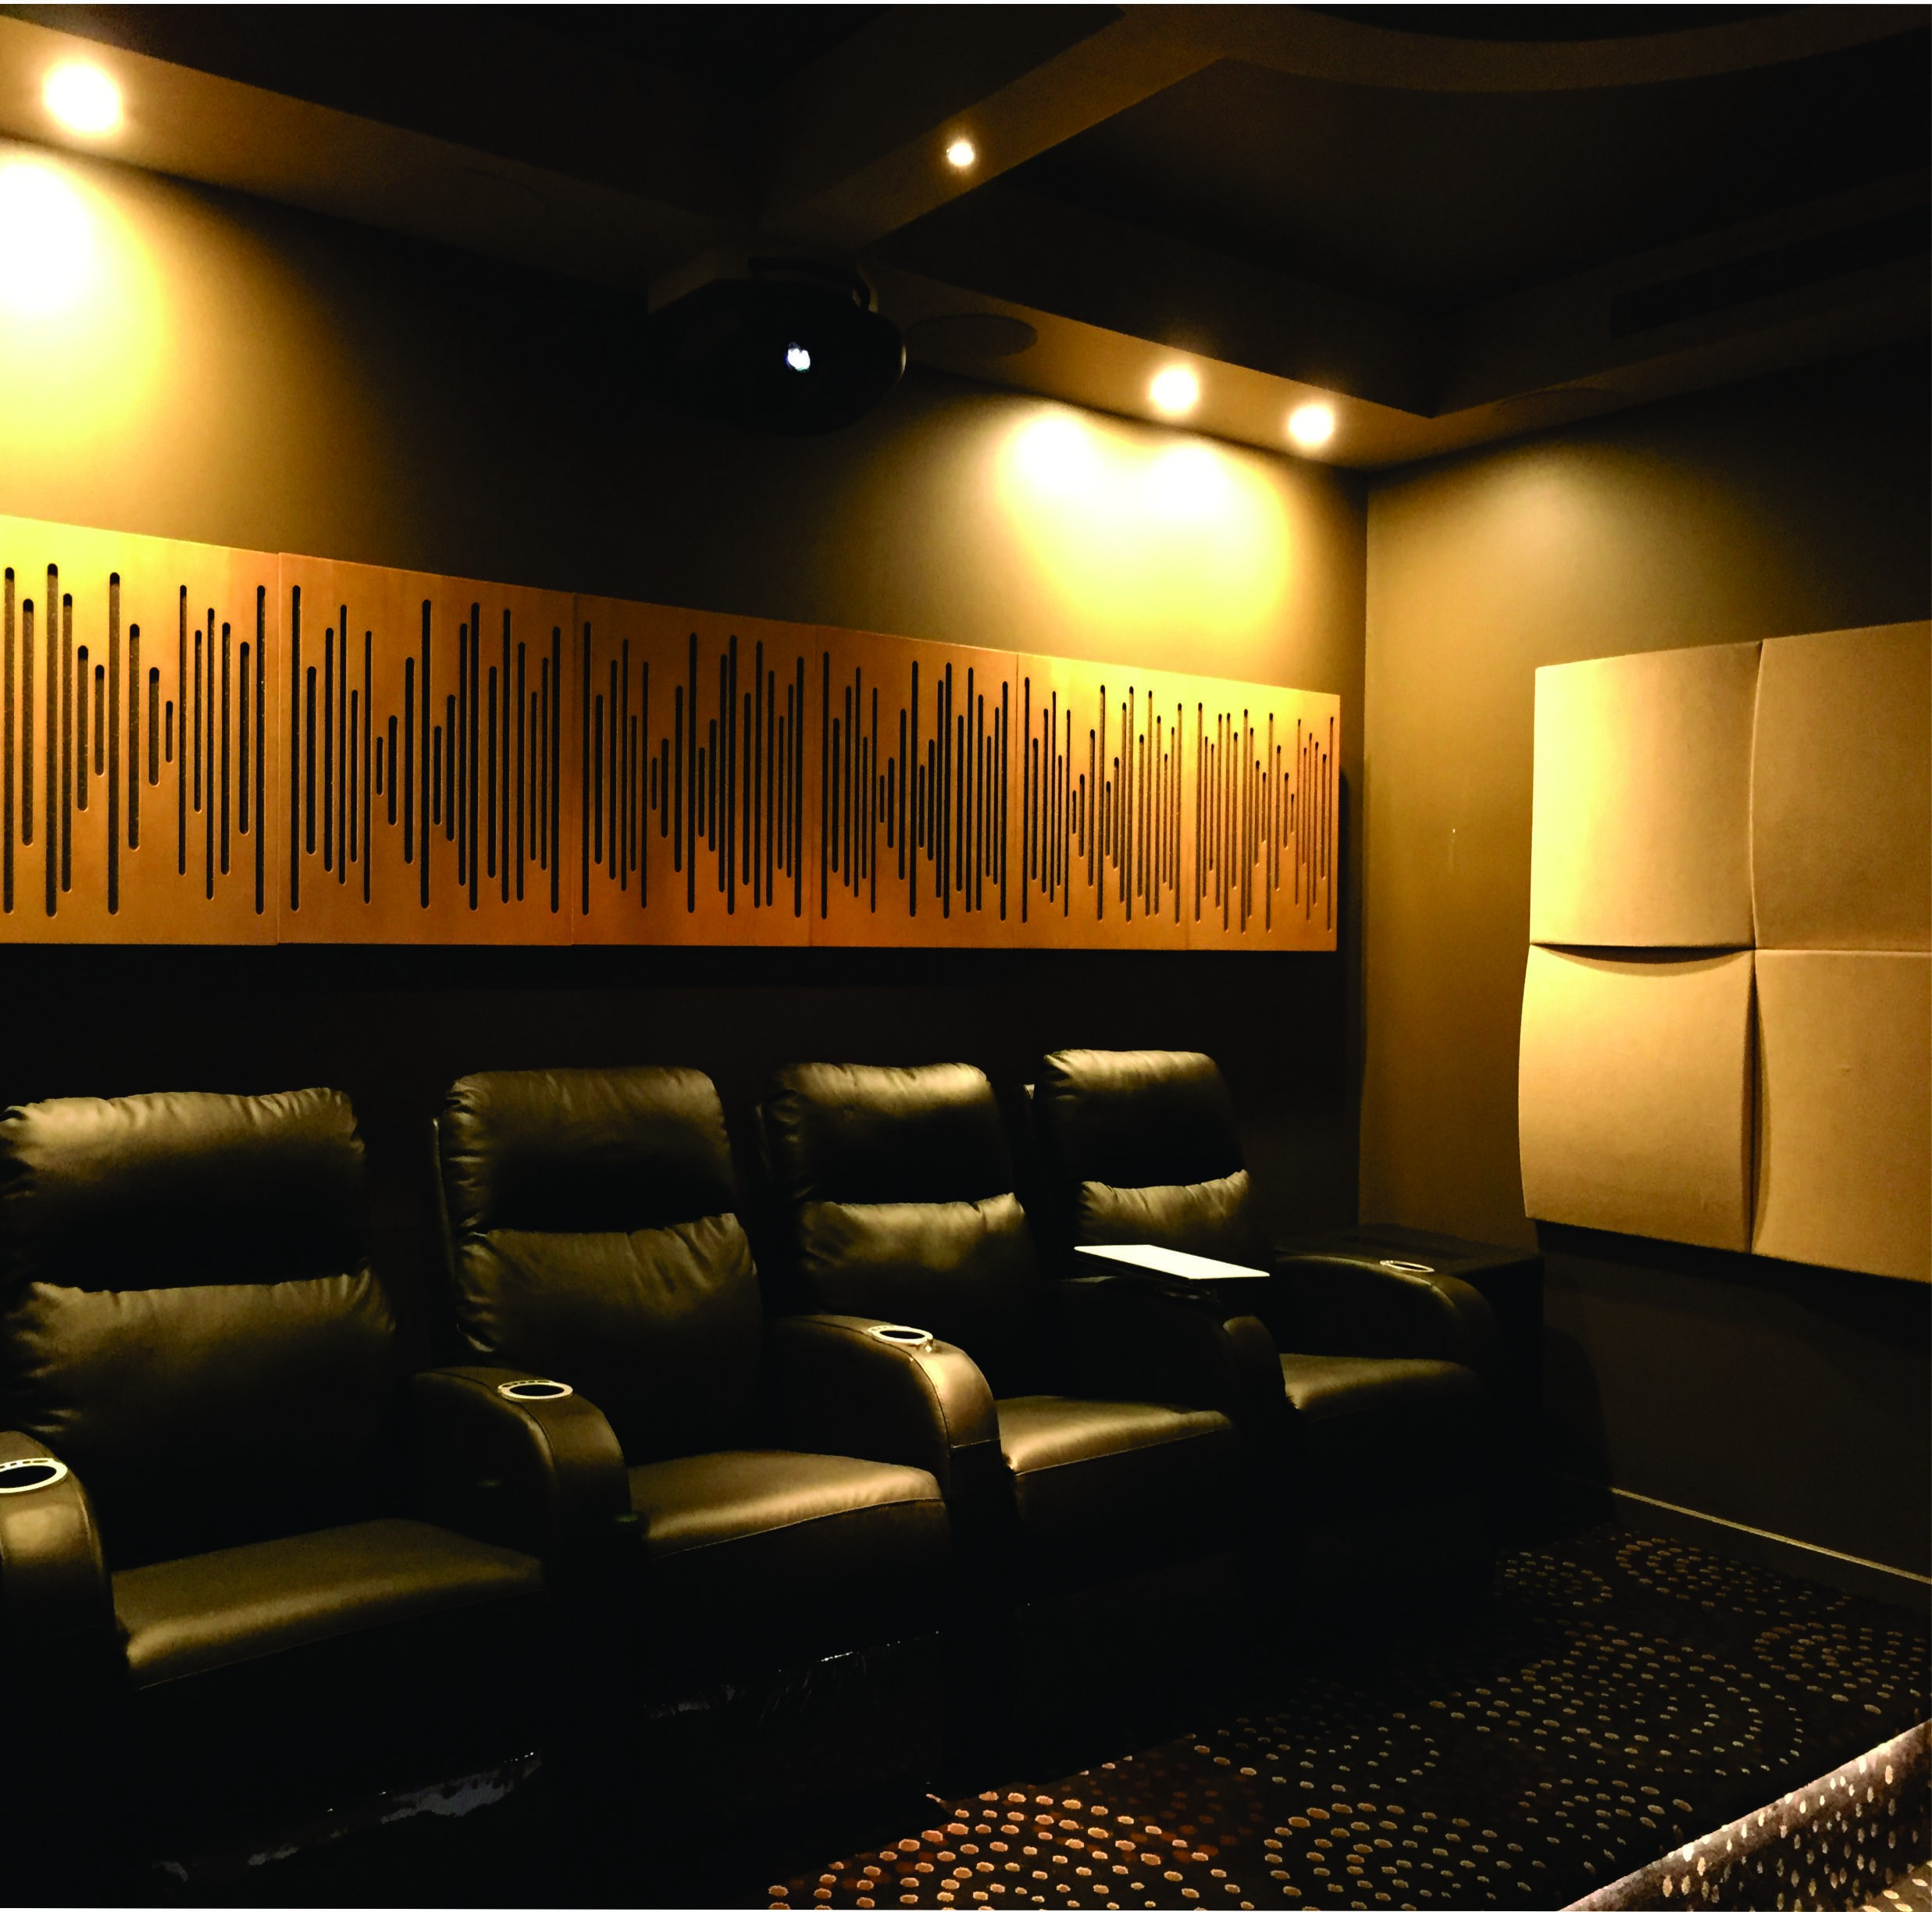 Media Room acoustics panels.